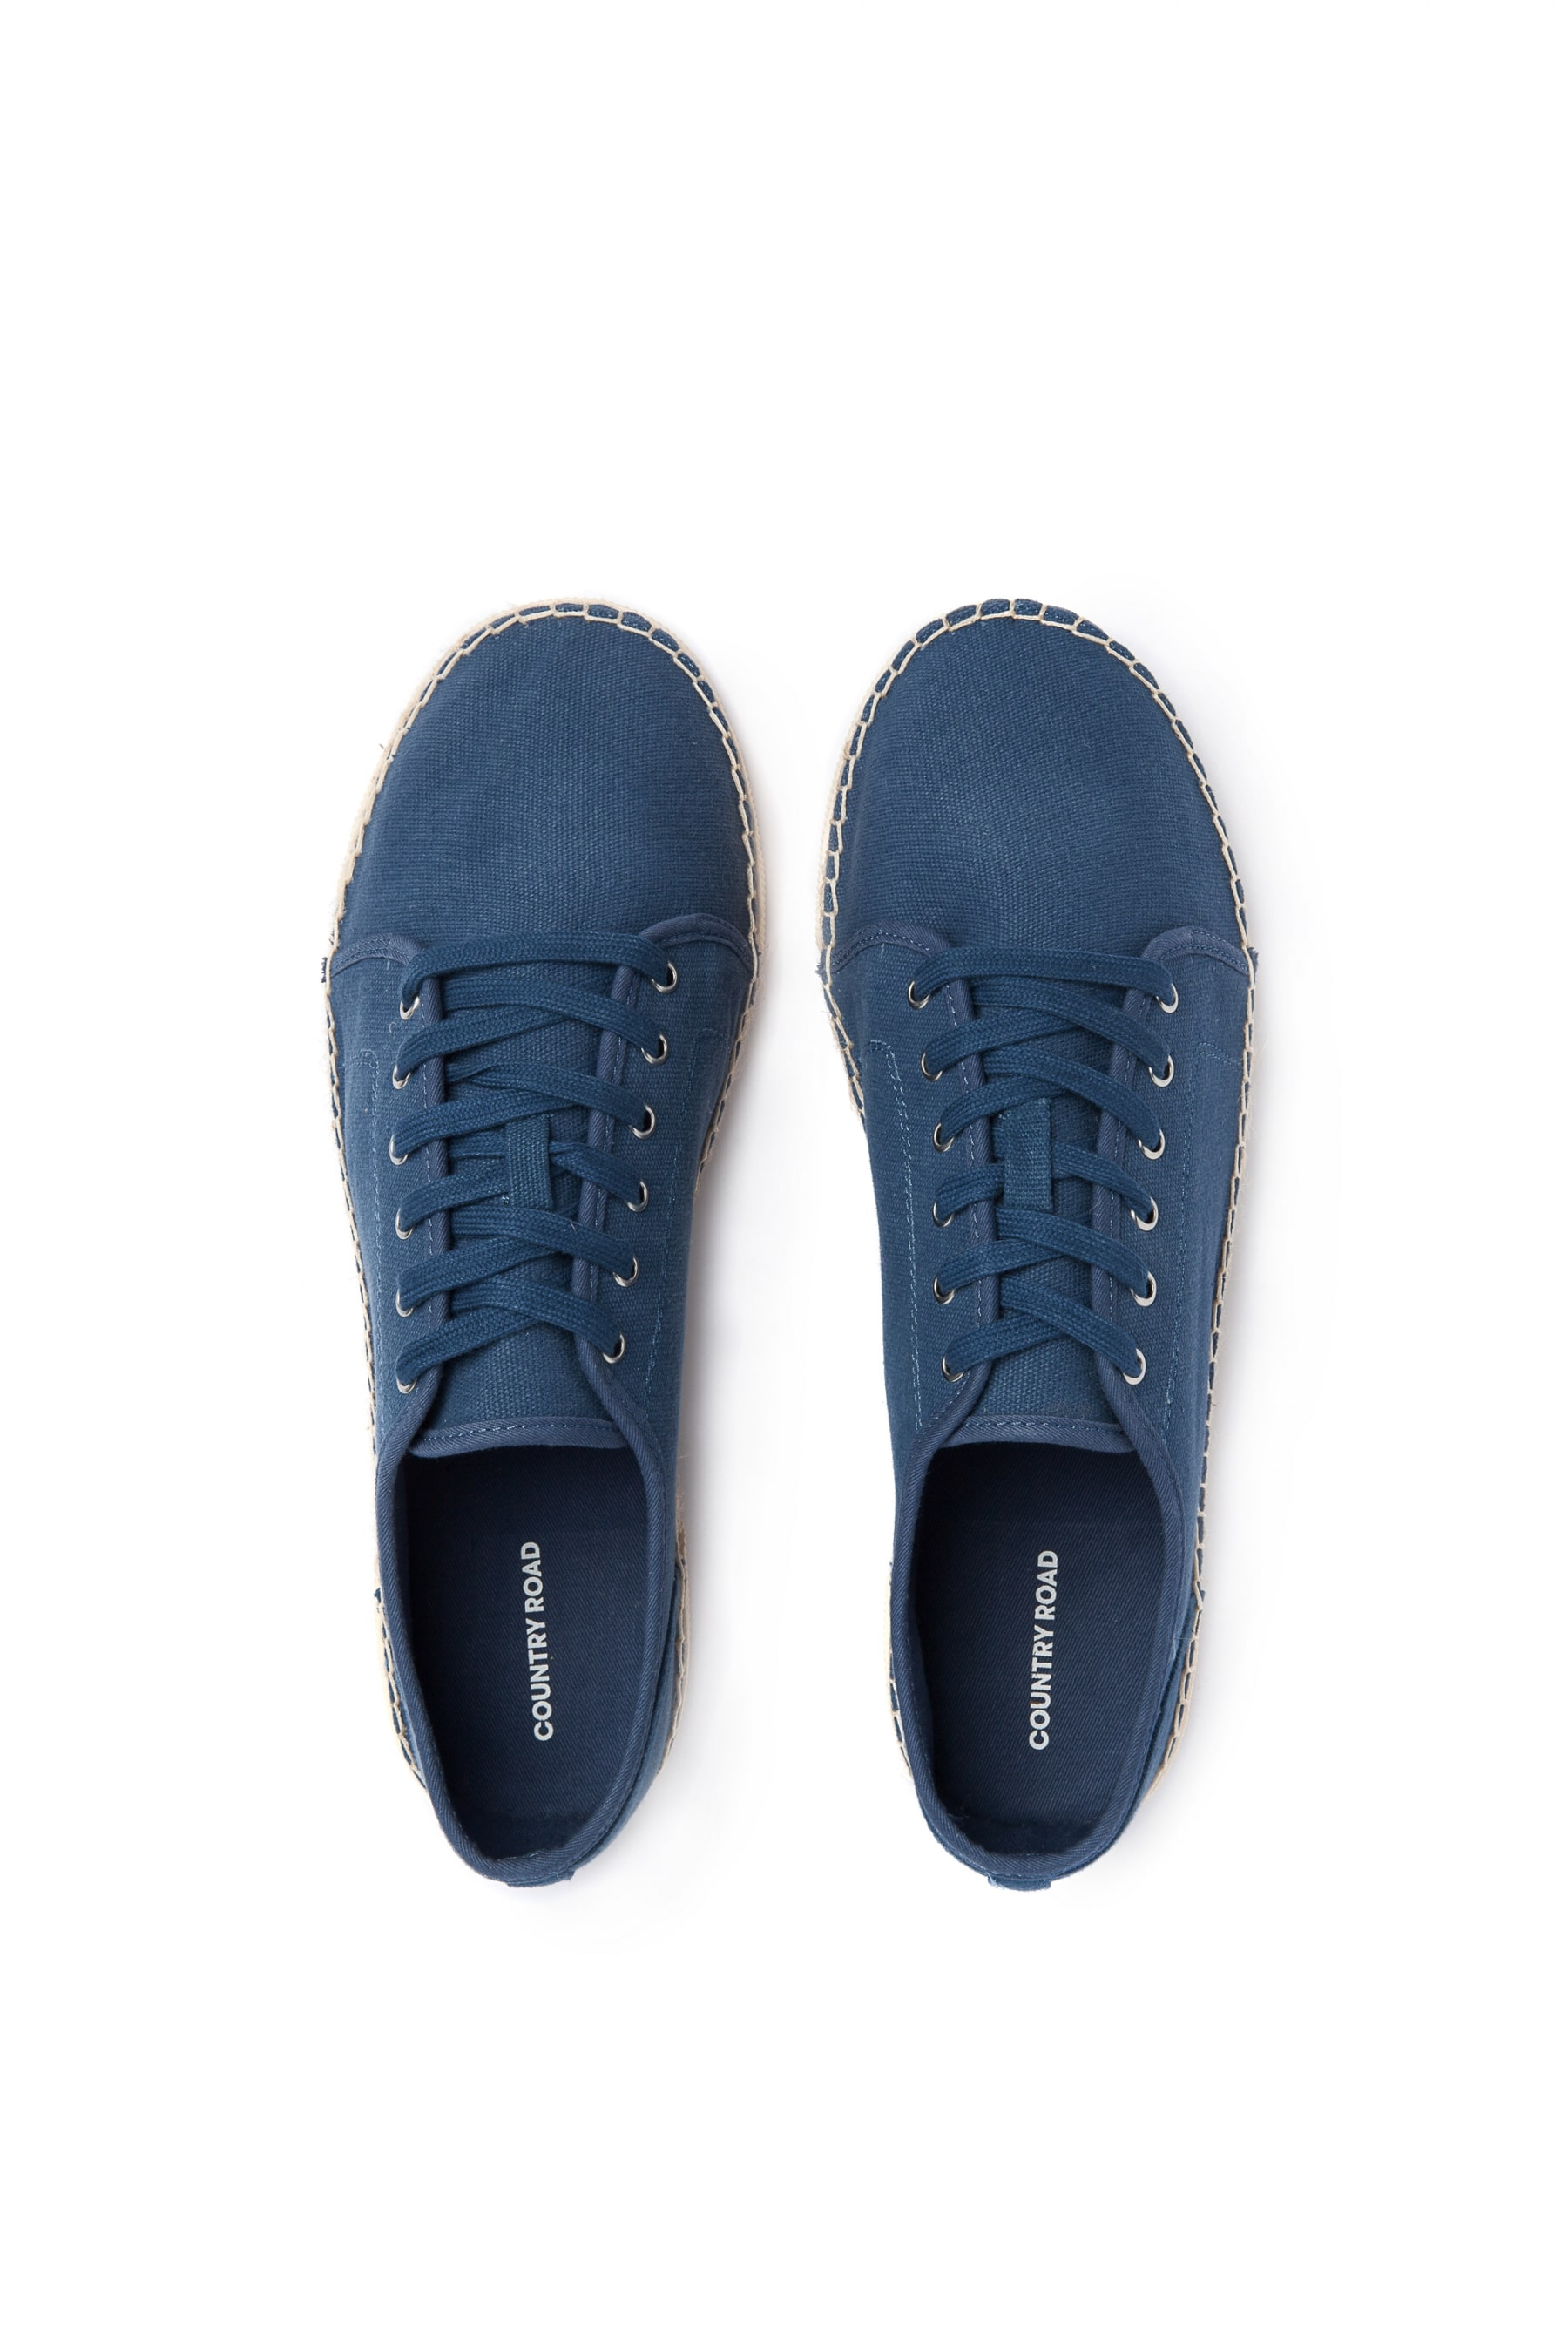 country road washed blue sneakers